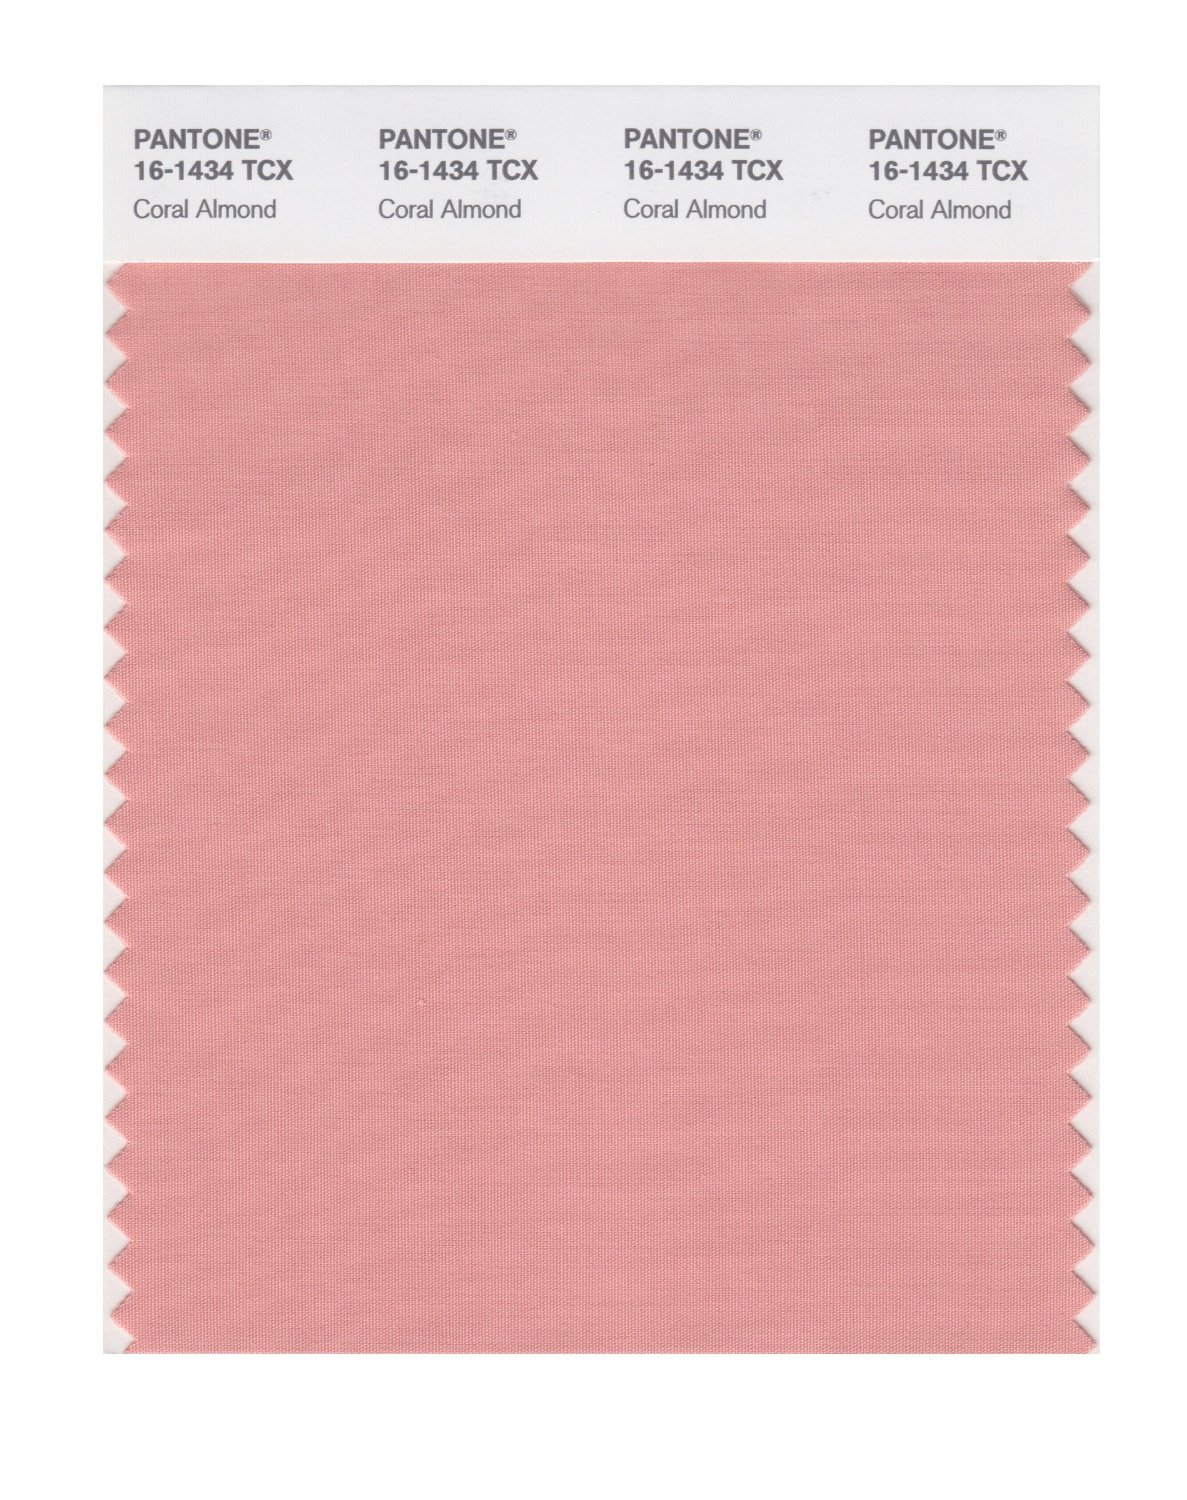 Pantone Smart Swatch 16-1434 Coral Almond